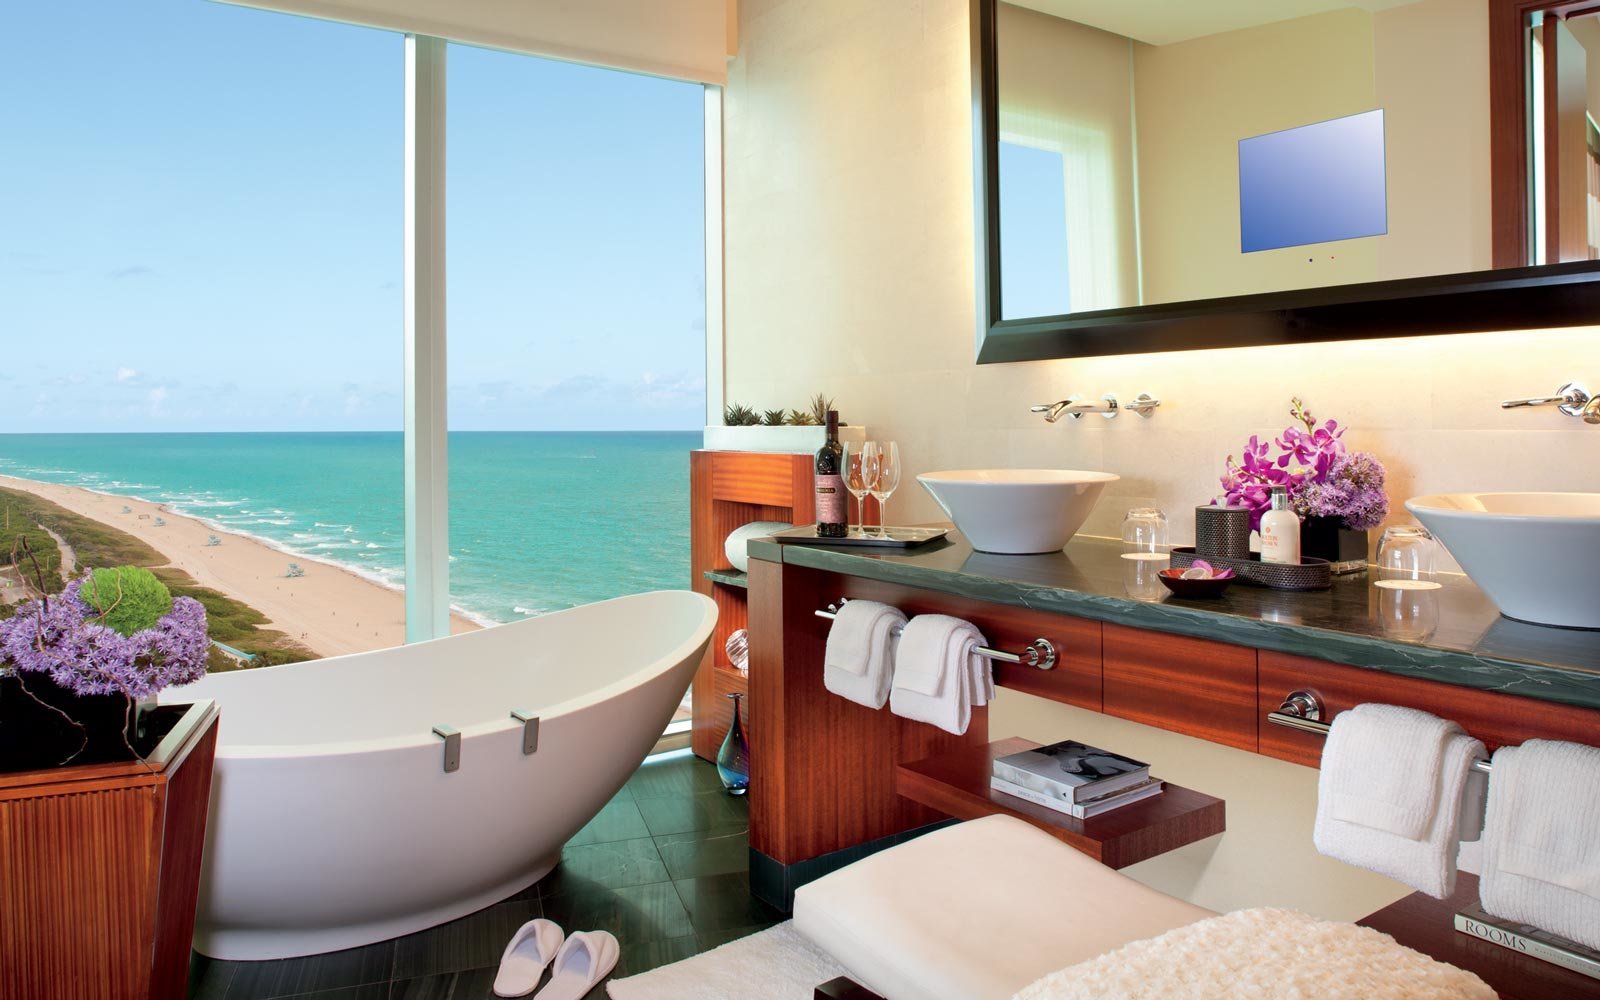 ritz-carlton-bal-harbour-miami-florida-HOTELBATHS0119.jpg